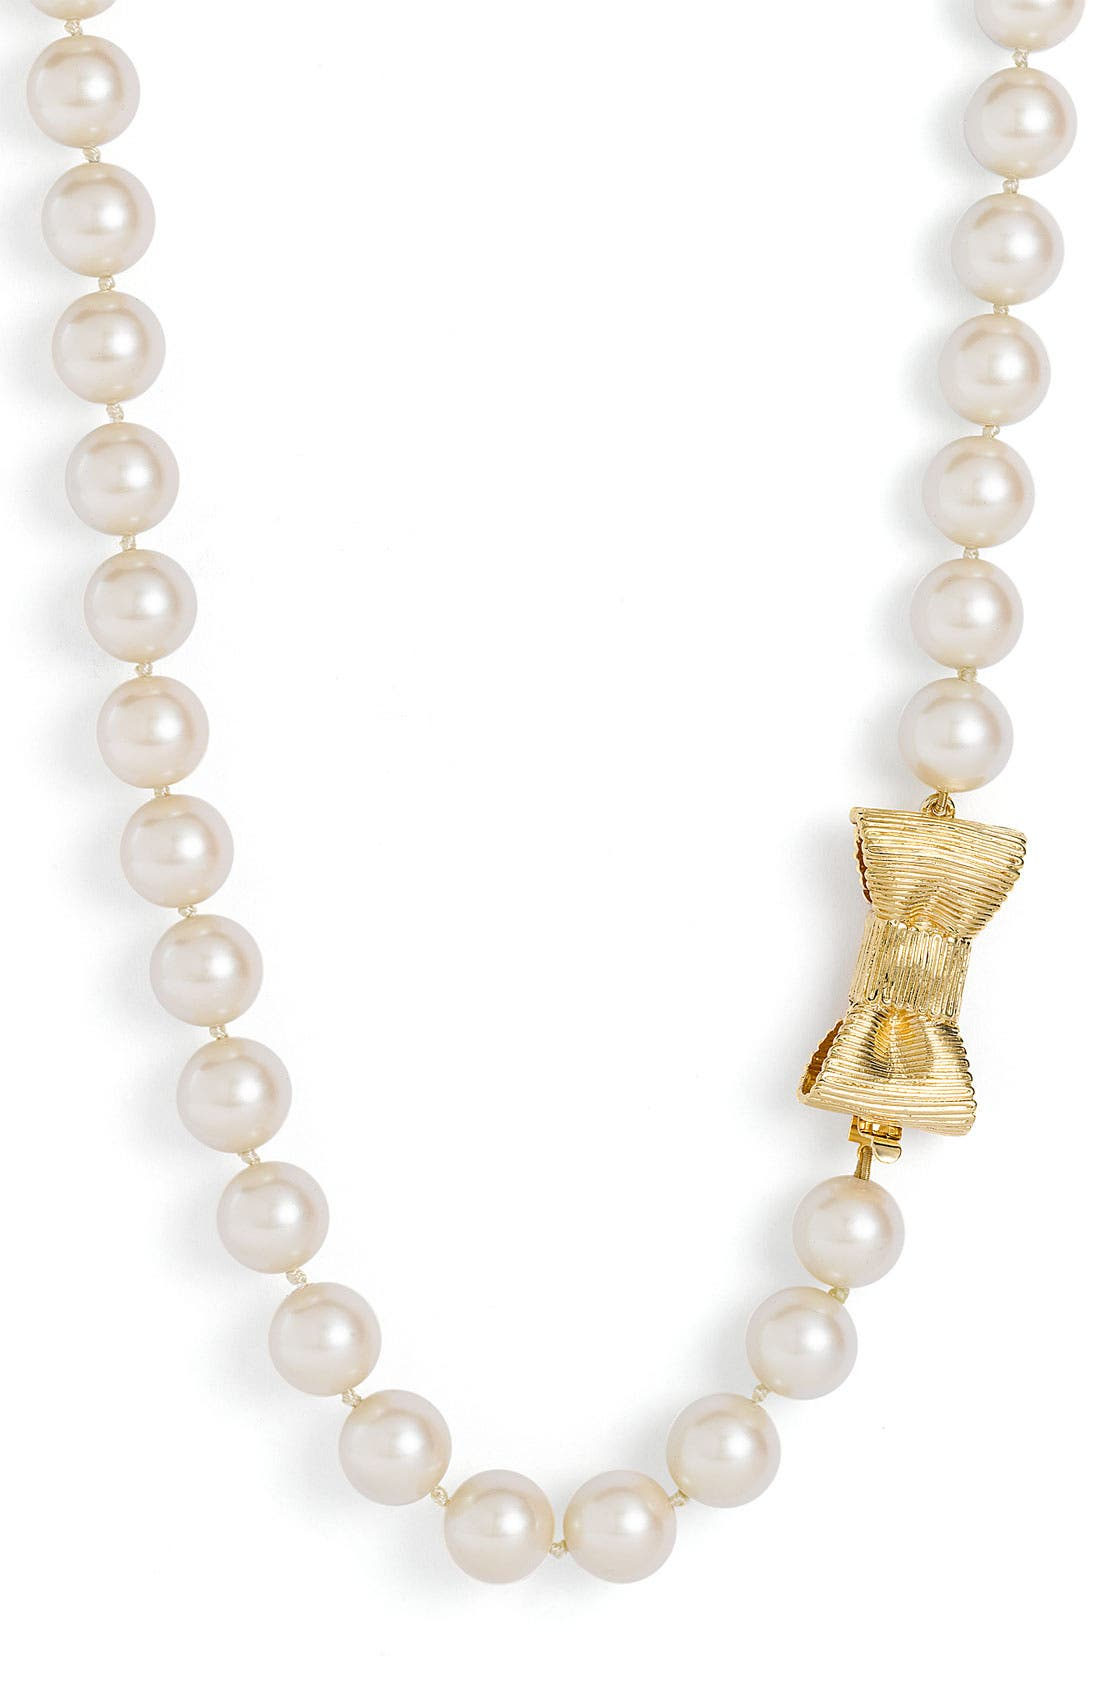 Main Image - kate spade new york 'all wrapped up' glass pearl long necklace